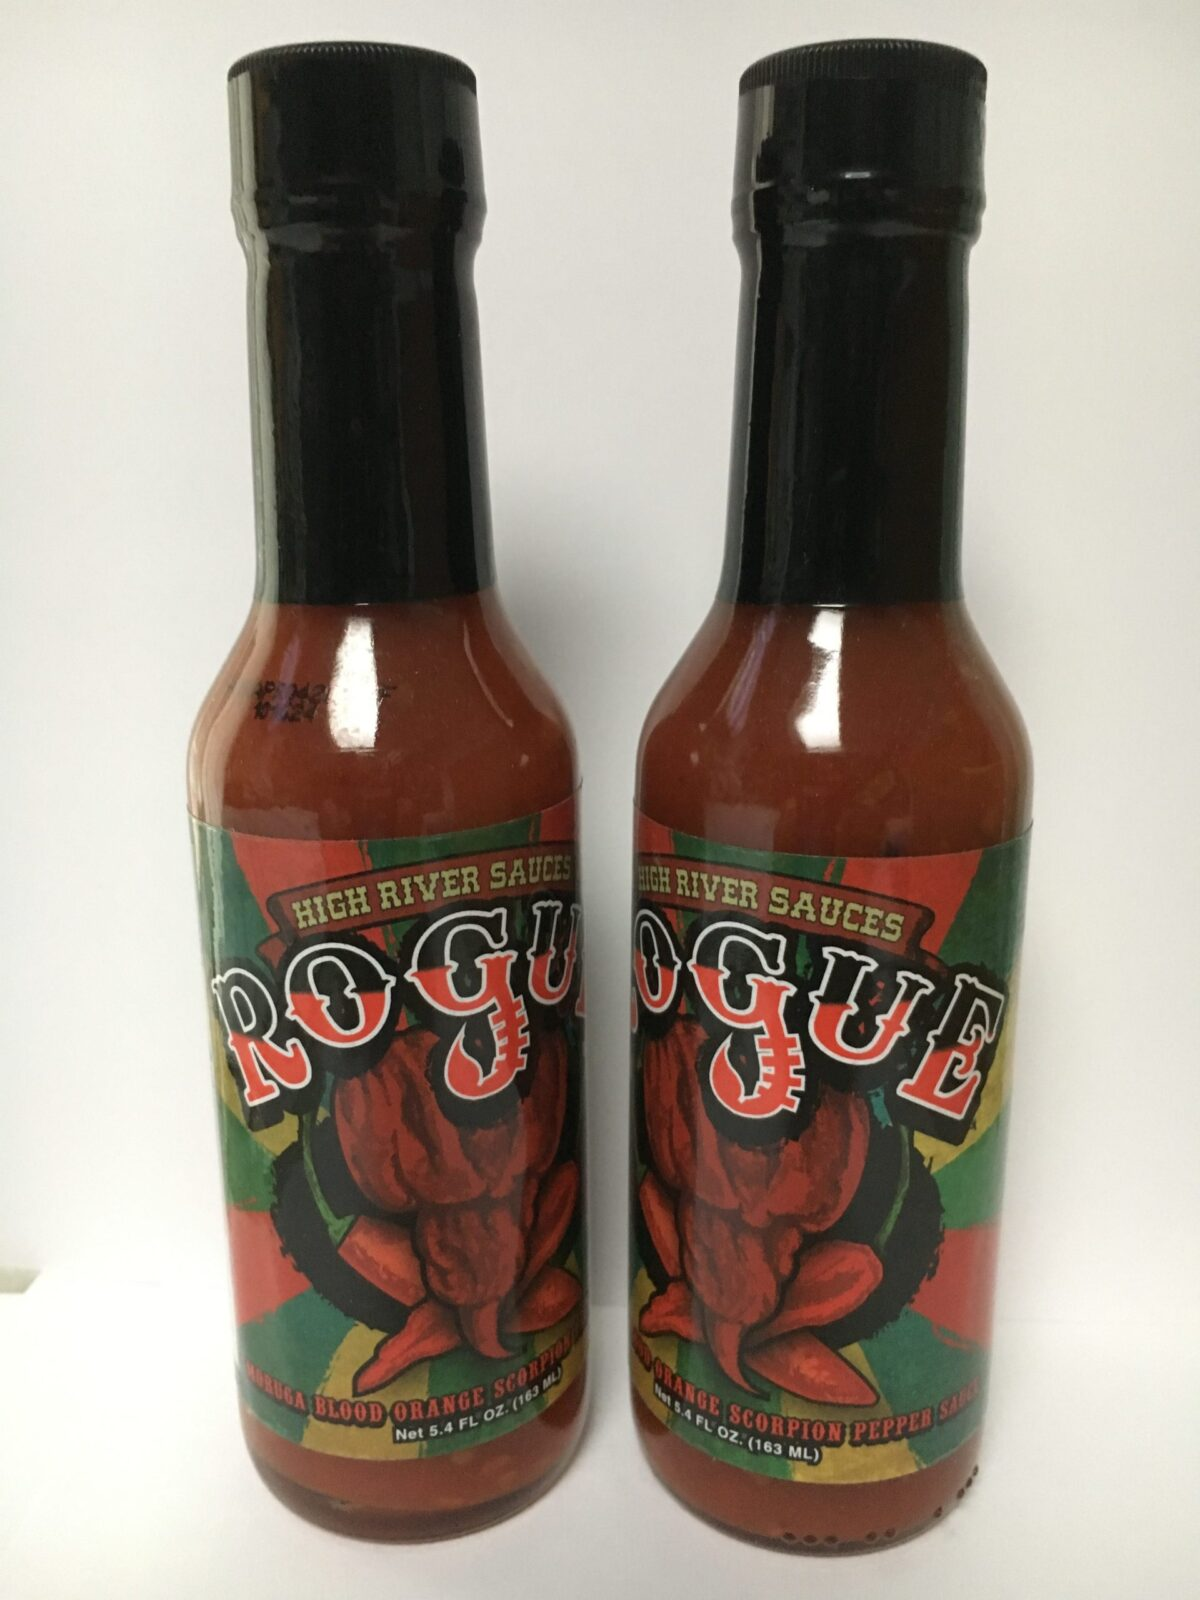 Rogue Moruga Blood Orange Scorpion Pepper Sauce